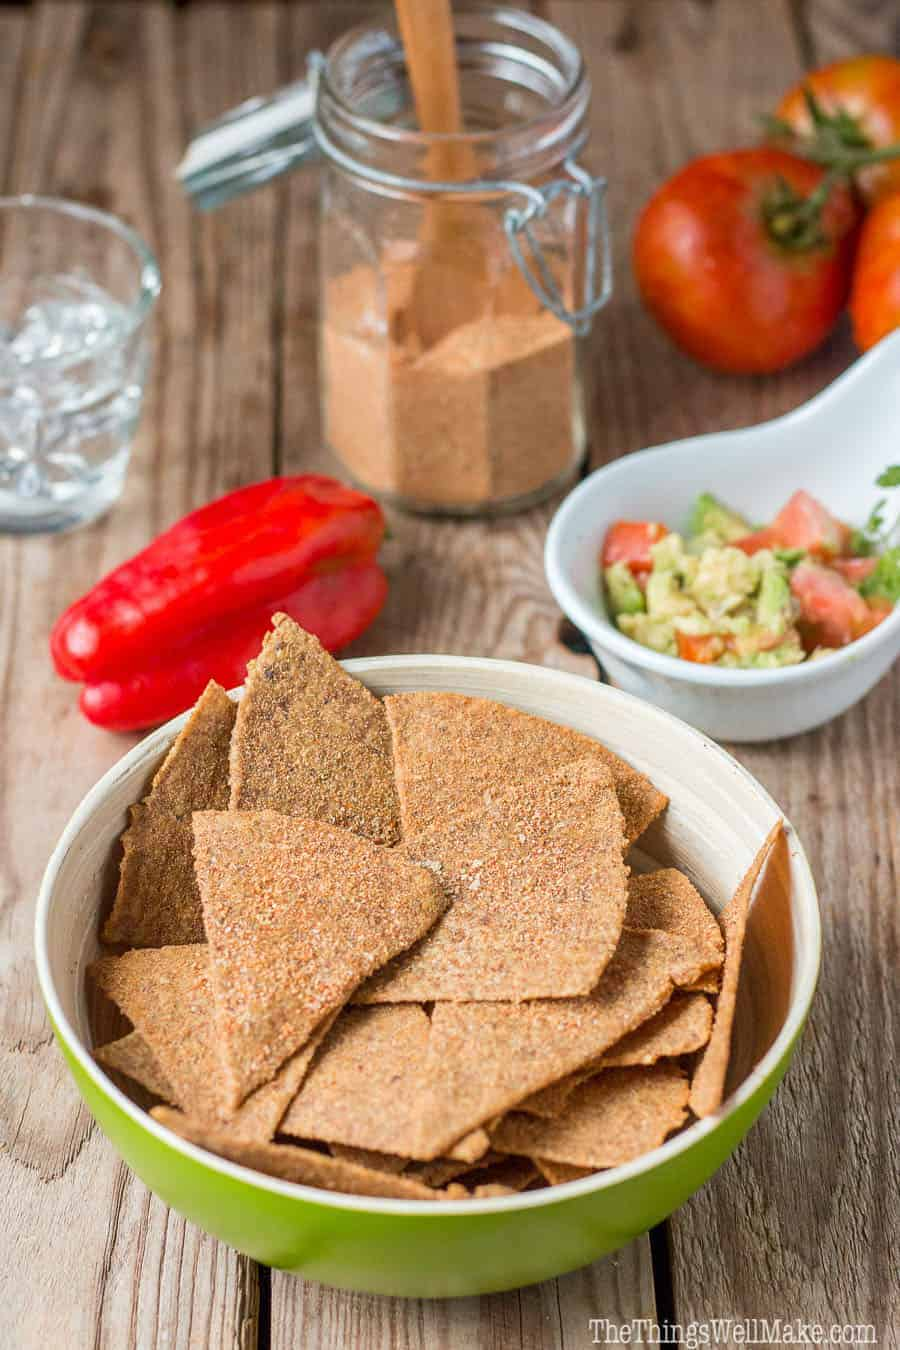 A bowl of paleo Dorito-like chips made of flaxseeds